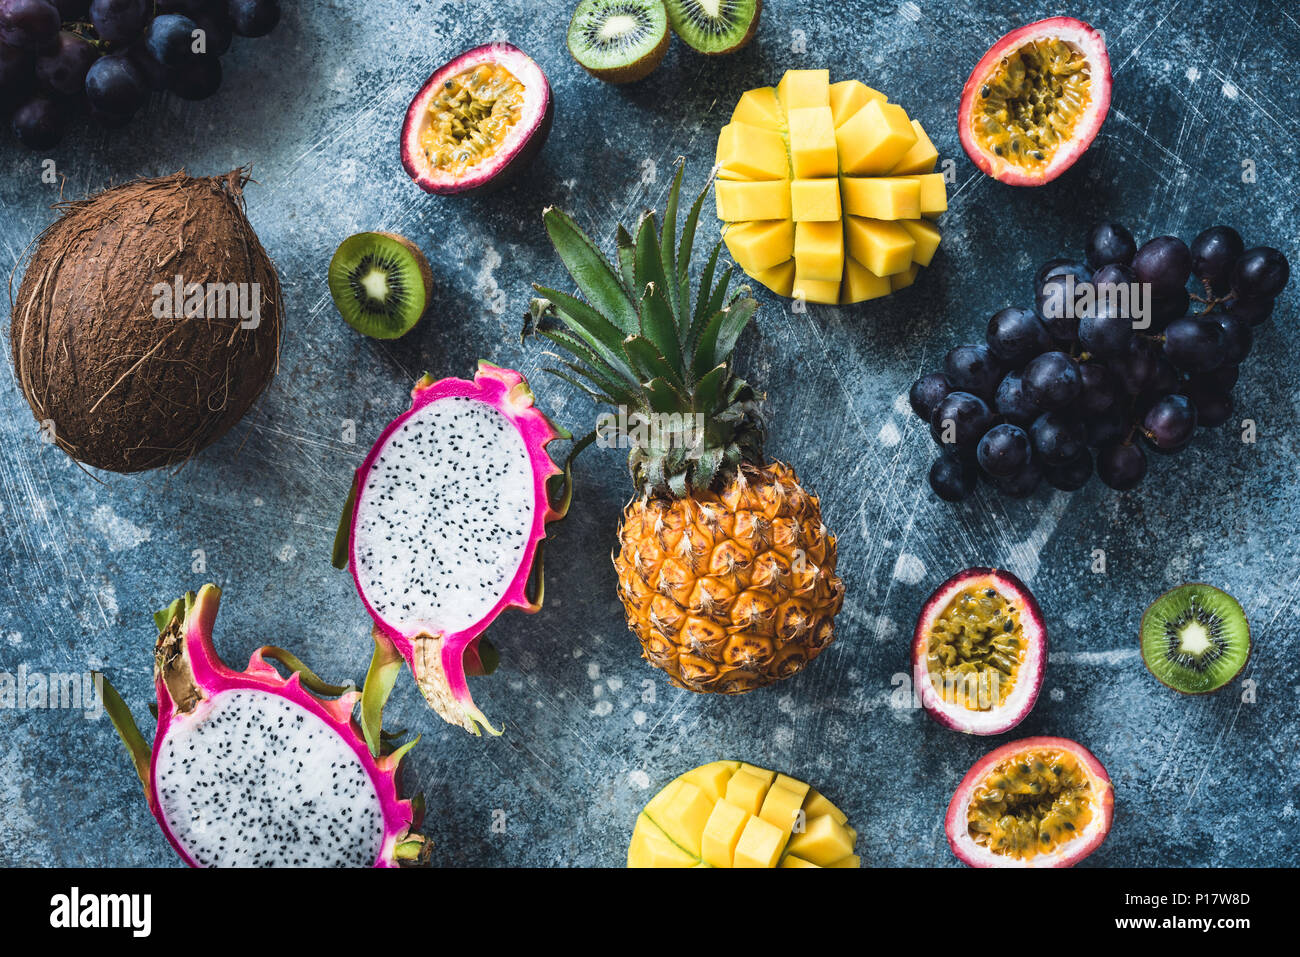 Tropical fruits on stone background, flat lay, table top view. Pitaya, passion fruit, grapes, kiwi, coconut, mango and pineapple - Stock Image